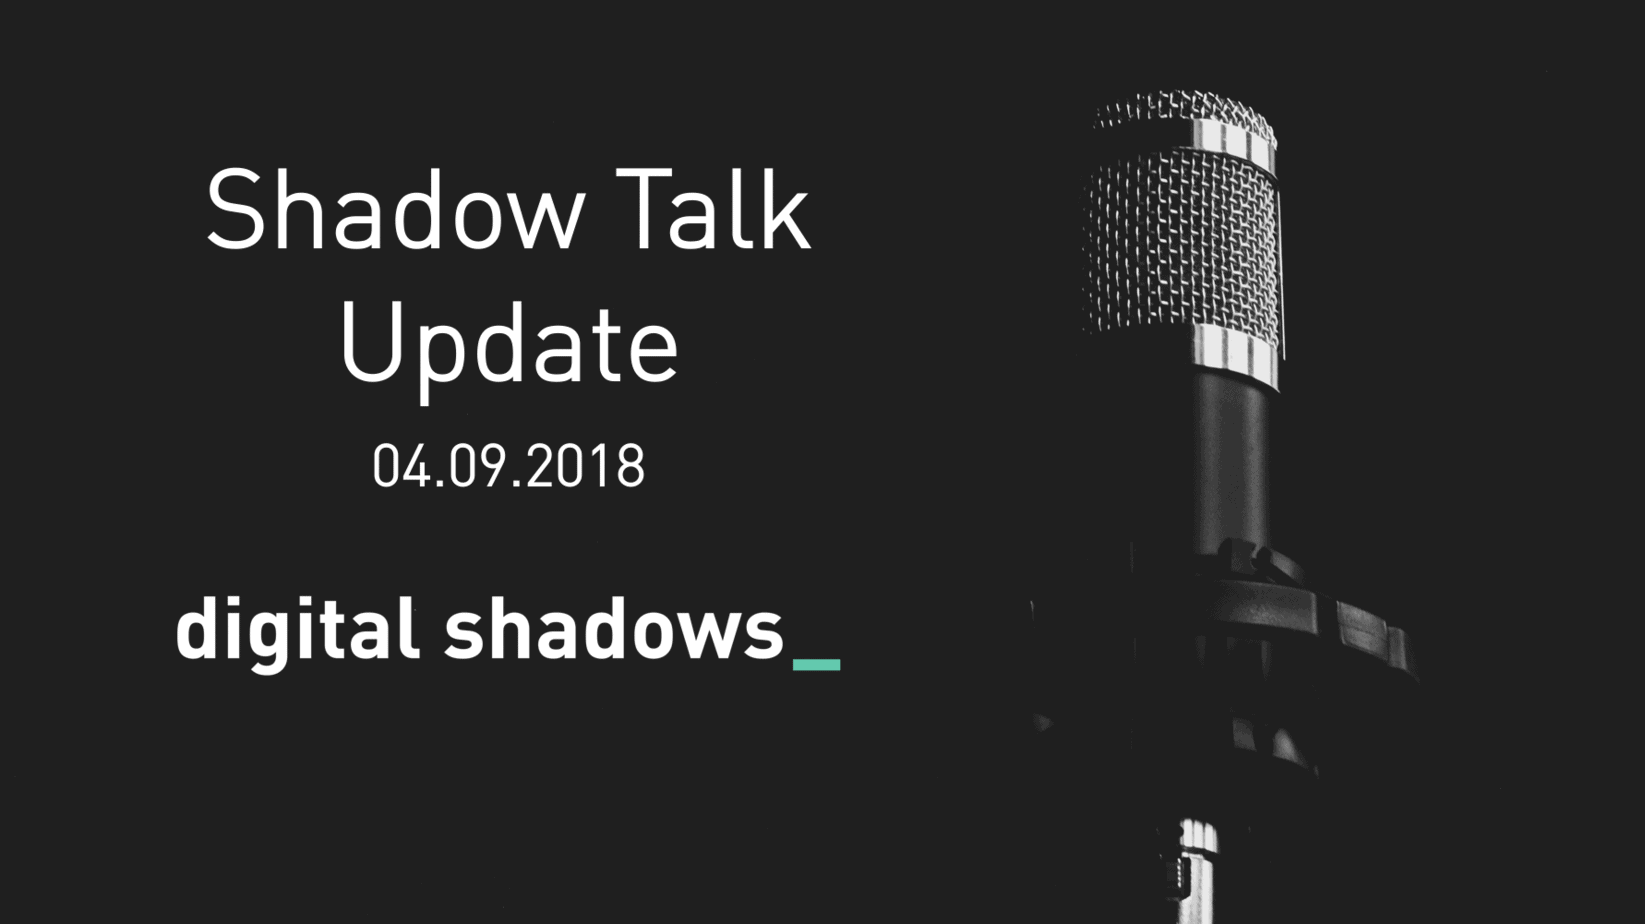 Shadow Talk Update – 04.09.2018